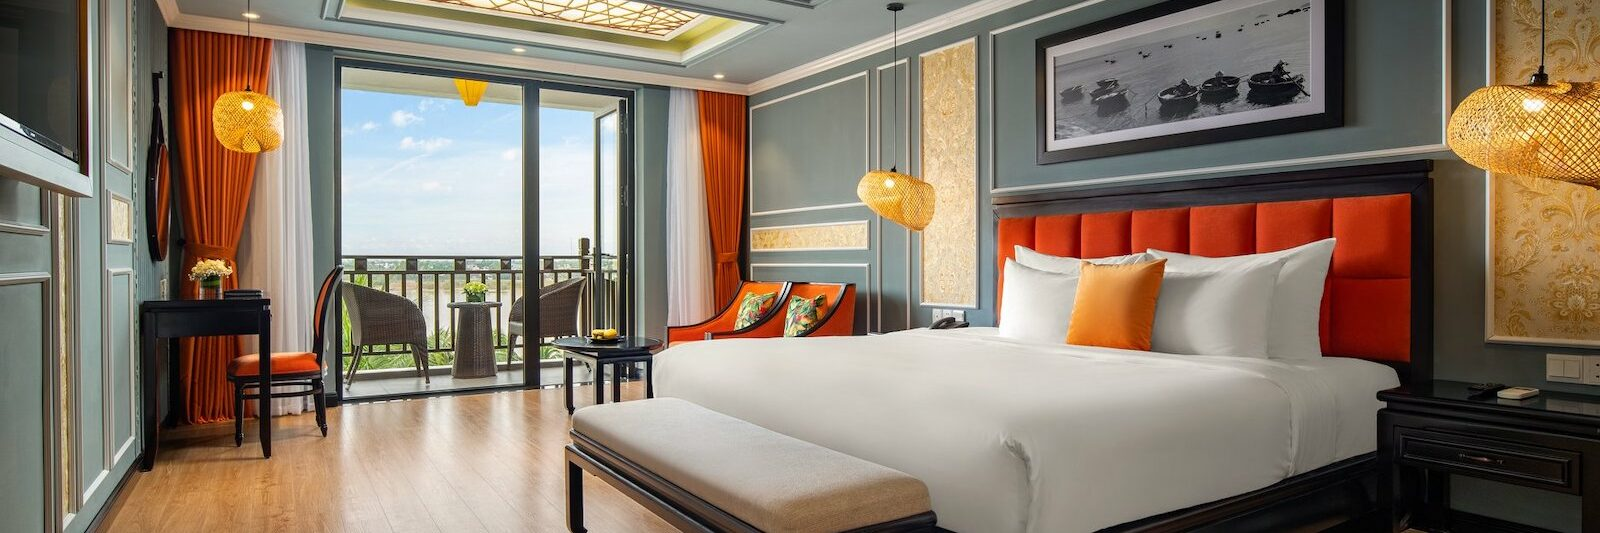 Image of the Silk Marina Resort & Spa - Mulberry Collection bedroom in Hoi An, Vietnam